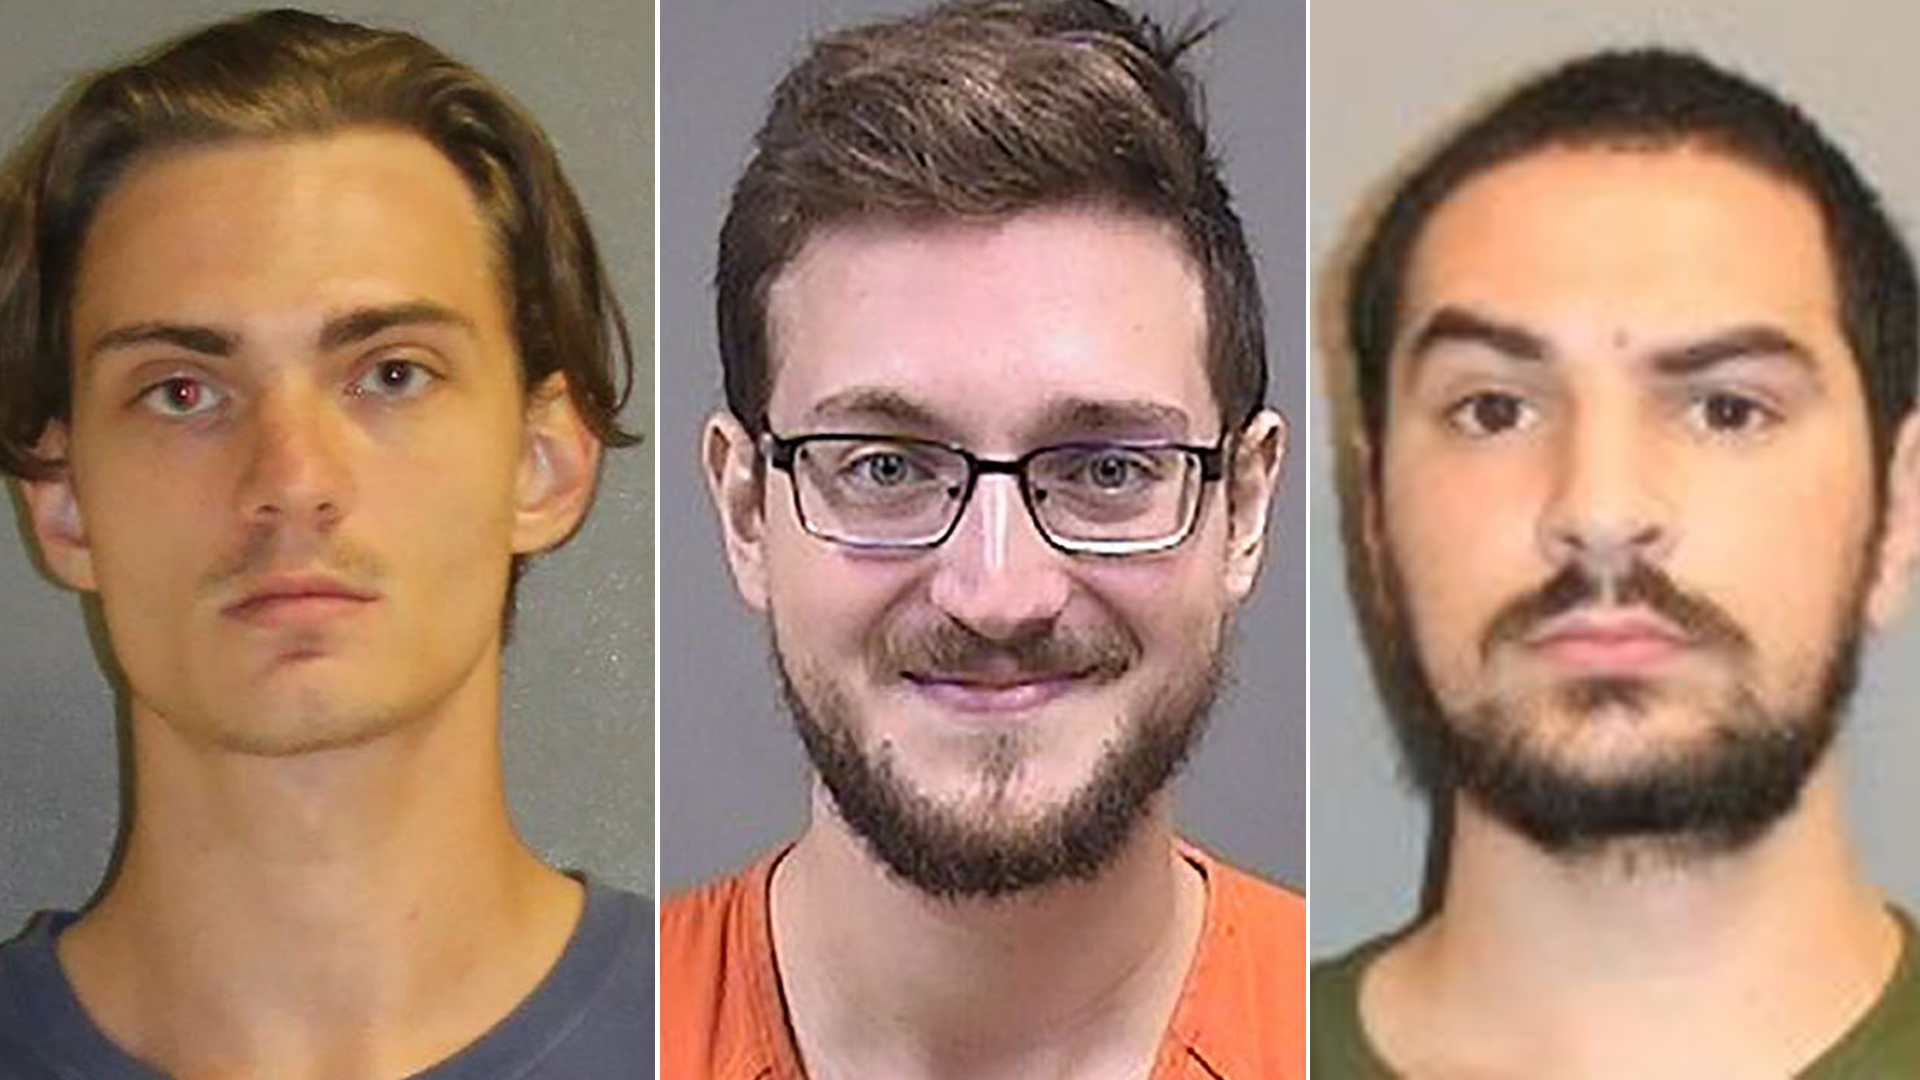 Tristan Scott Wix, James Patrick Reardon and Brandon Wagshol are seen in photos released by local law enforcement agencies.